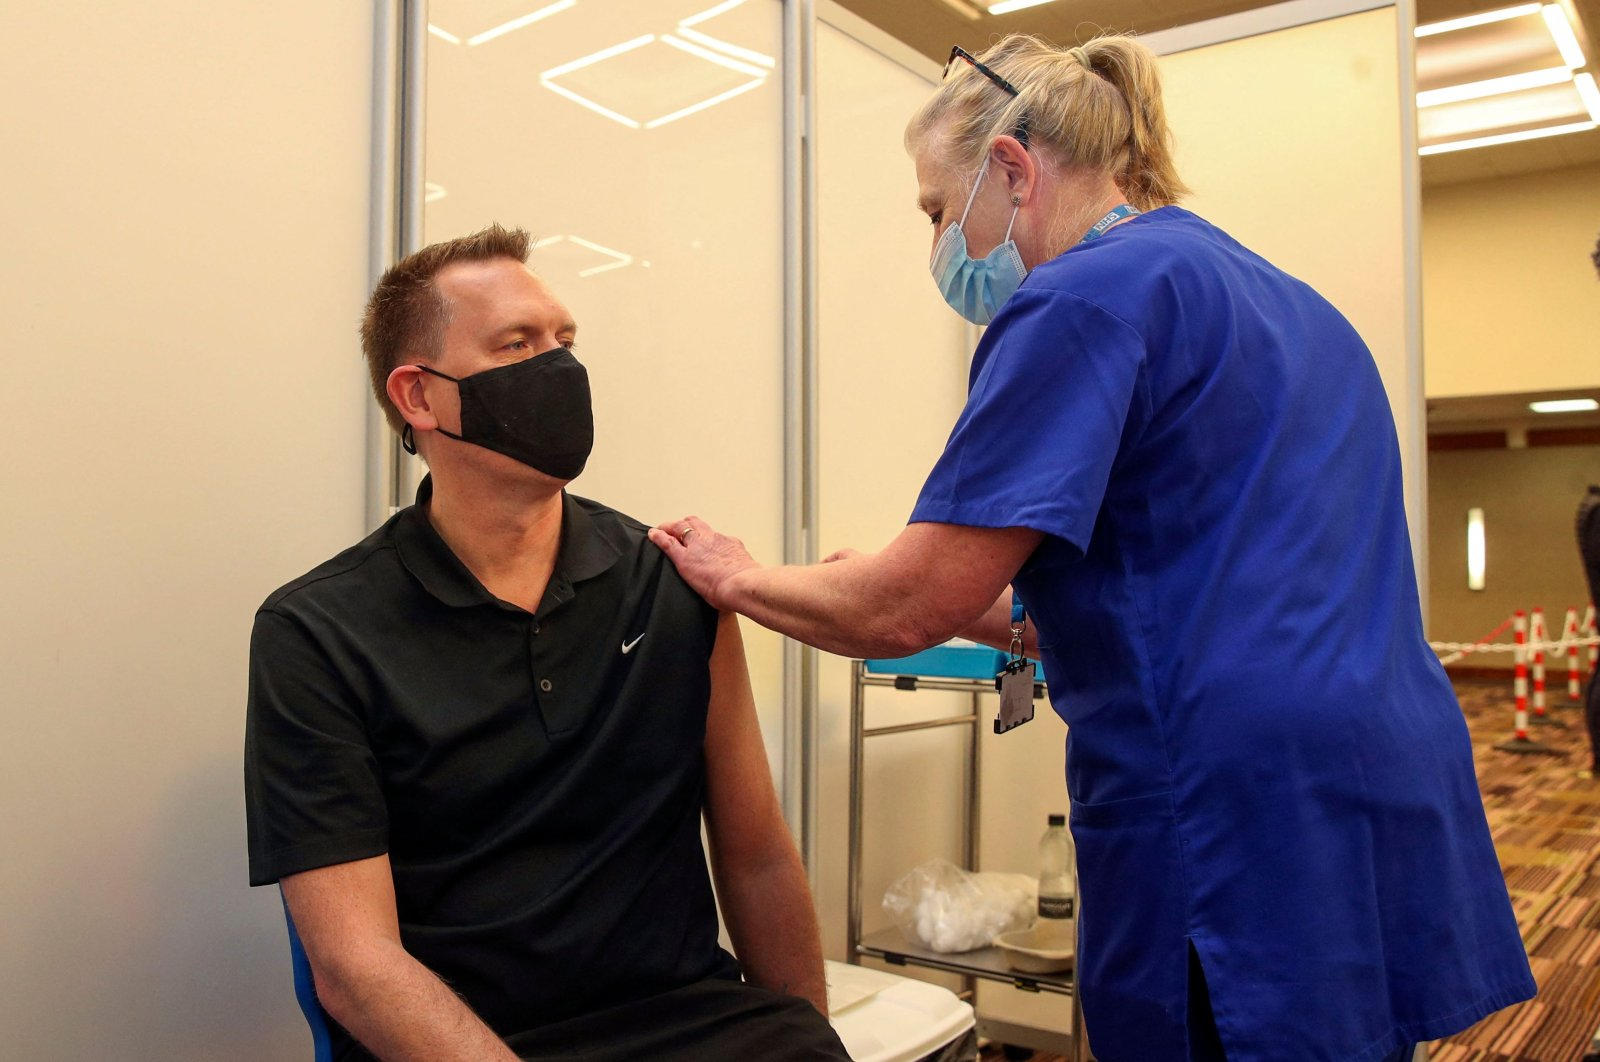 Martin Pluves receives an injection of the Moderna COVID-19 vaccine administered by nurse Paula Bartlett, at the Madejski Stadium in Reading, west of London on April 13, 2021. (AFP Photo)